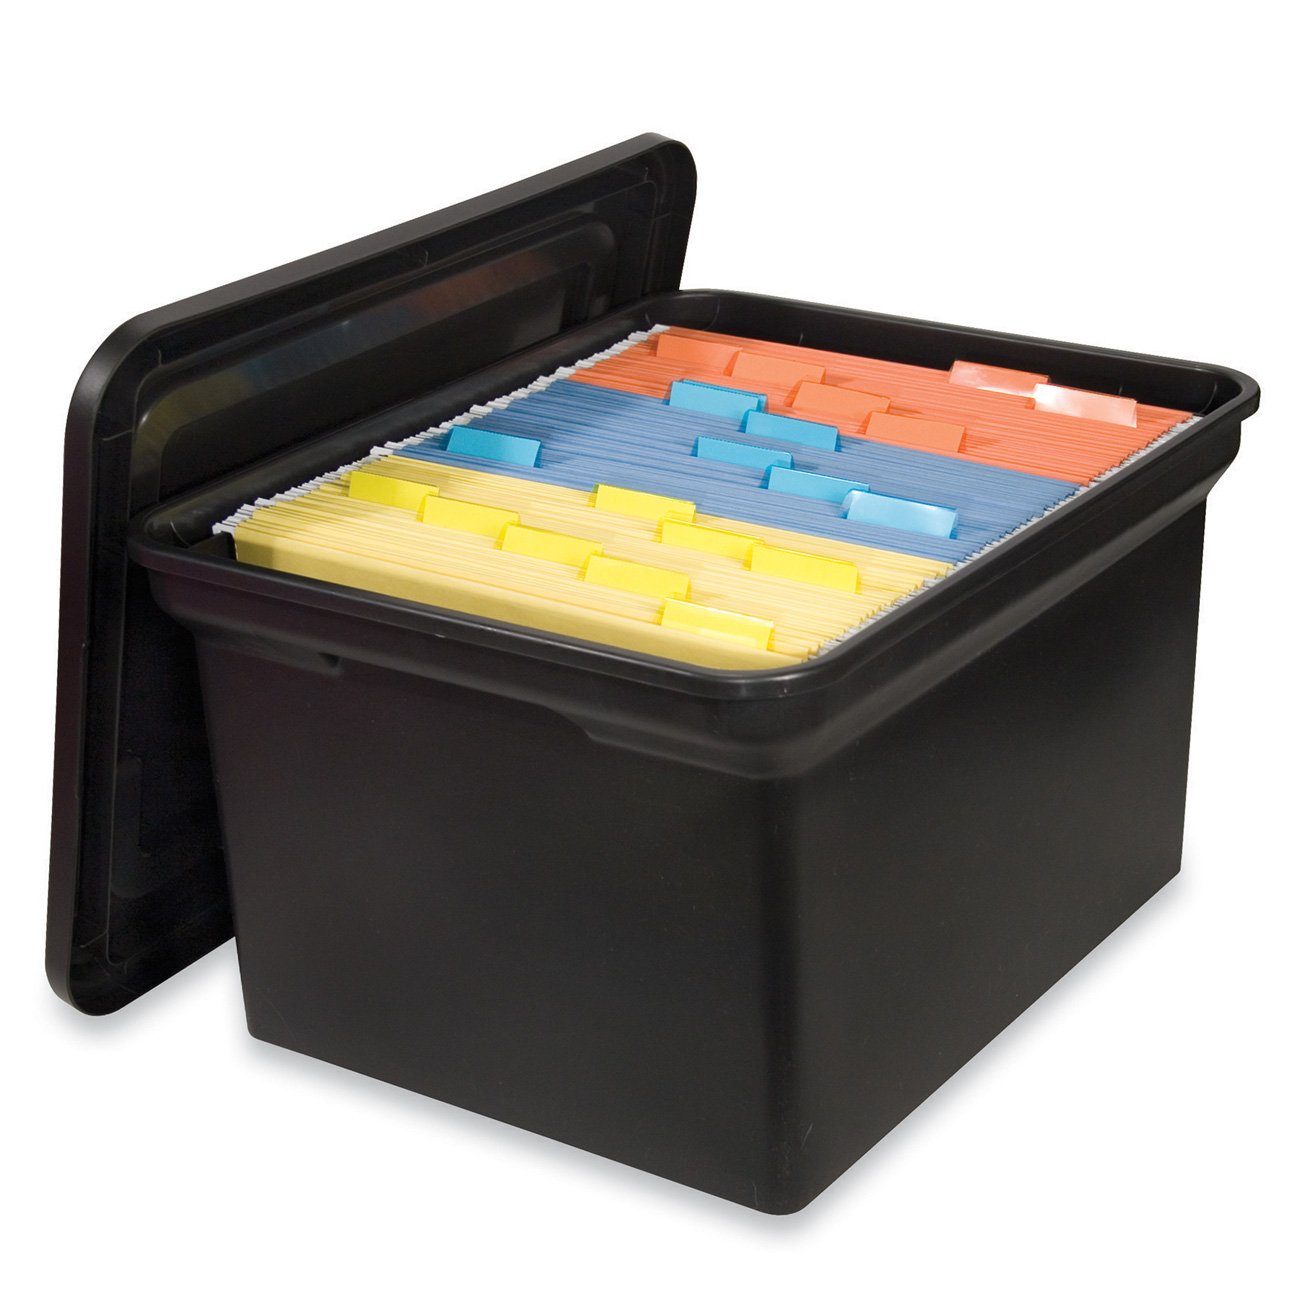 Amazon.com : S.P. Richards Company Hanging File Tote With Lid, 14 1/8 X  17 7/8 X 10 3/4 Inches, Black (SPR26384) : Storage File Boxes : Office  Products